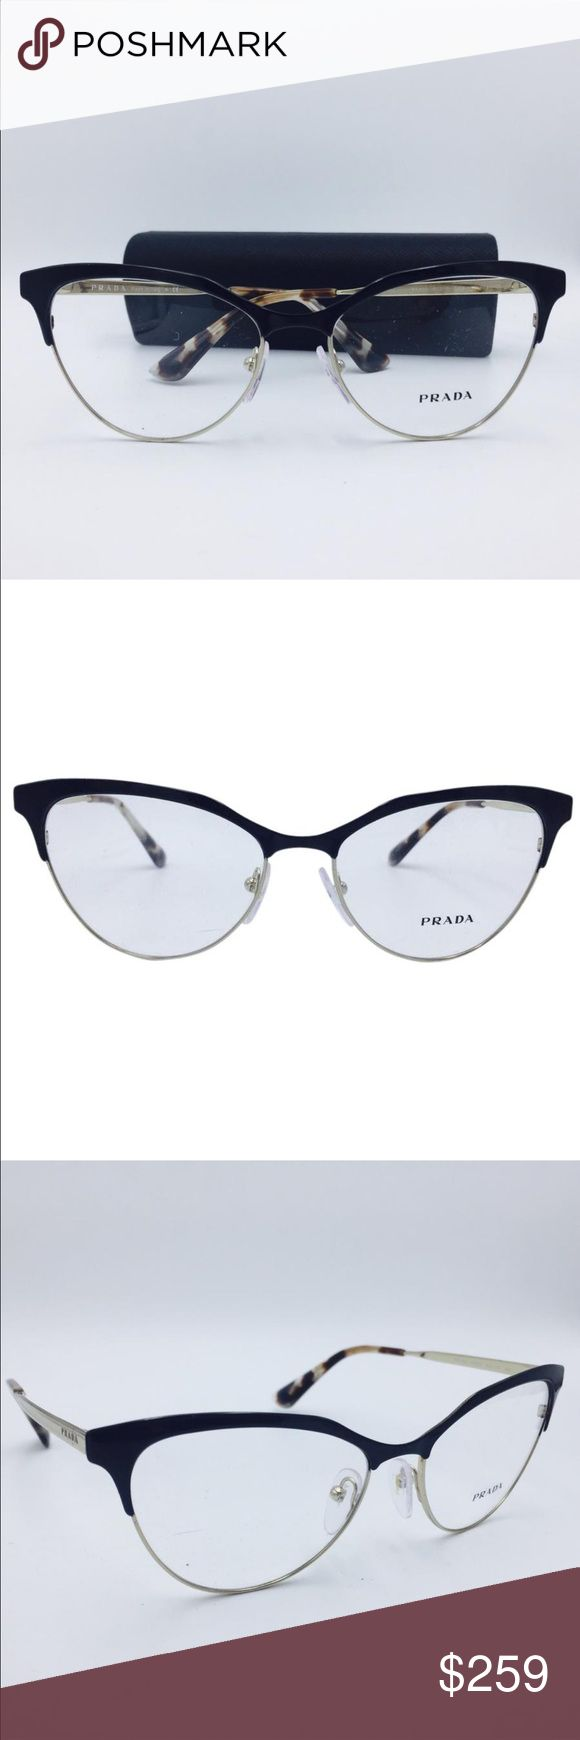 Prada eye glasses  Cinema Cat Eye Black Gold RX Eyeglasses Frame VPR 55S QE3-1O1  Excellent condition. 10/10. New. Never worn. May have tiny minor light factory scratches. Not visible. Enjoy these perfect eyeglasses for a fraction of the retail cost. 100% Authentic. Can be used with a prescription.   Includes original box and case.  Frame Color: Polished Black / Pale Gold Lens Color: Clear (Display Lenses. May Contain Light Scratches)  Sizes: 54, 16, 140mm Color:Black Gold Brand:Prada…